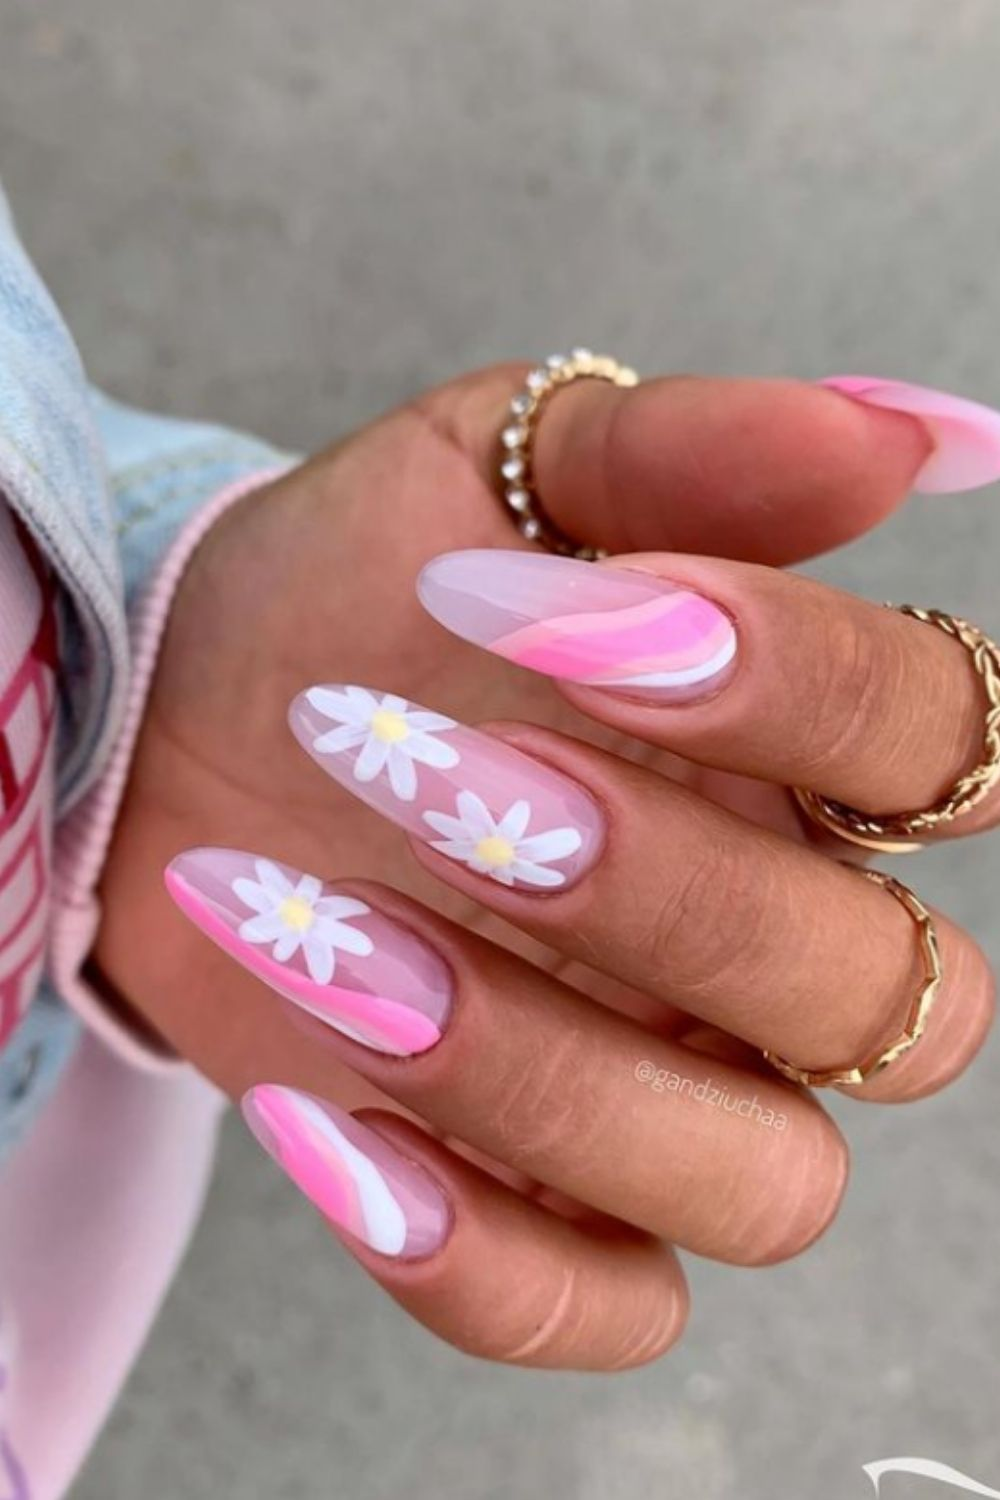 Pink and nude almond nails with flowers